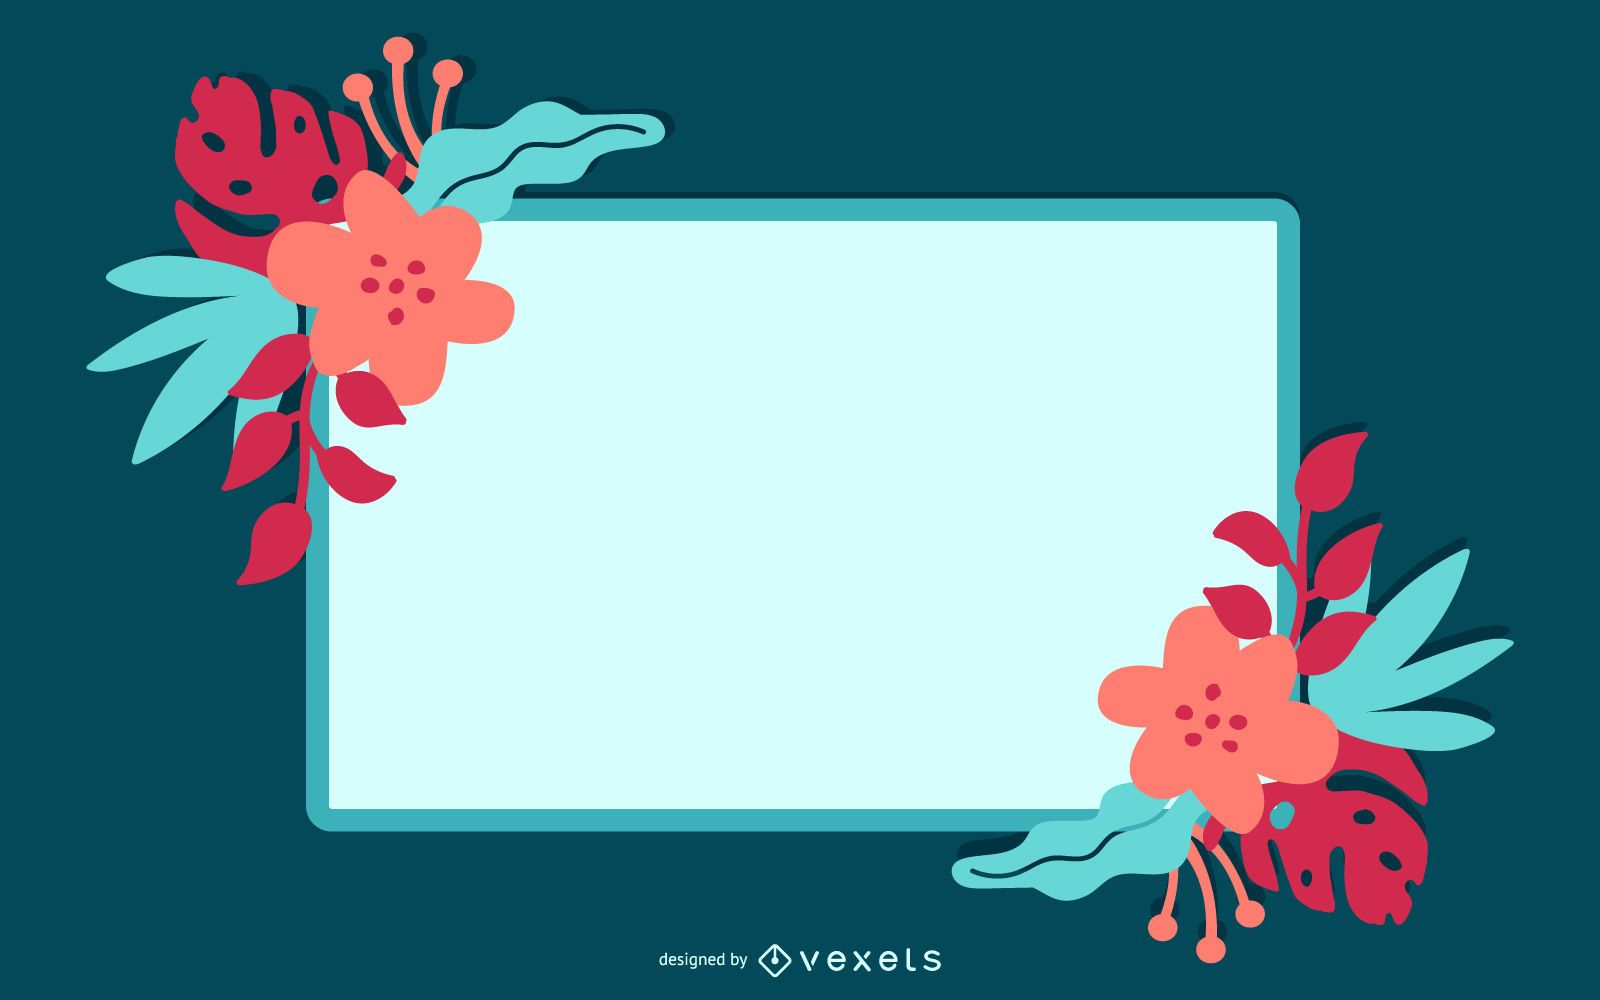 Swirling Floral Frame Turquoise Banner